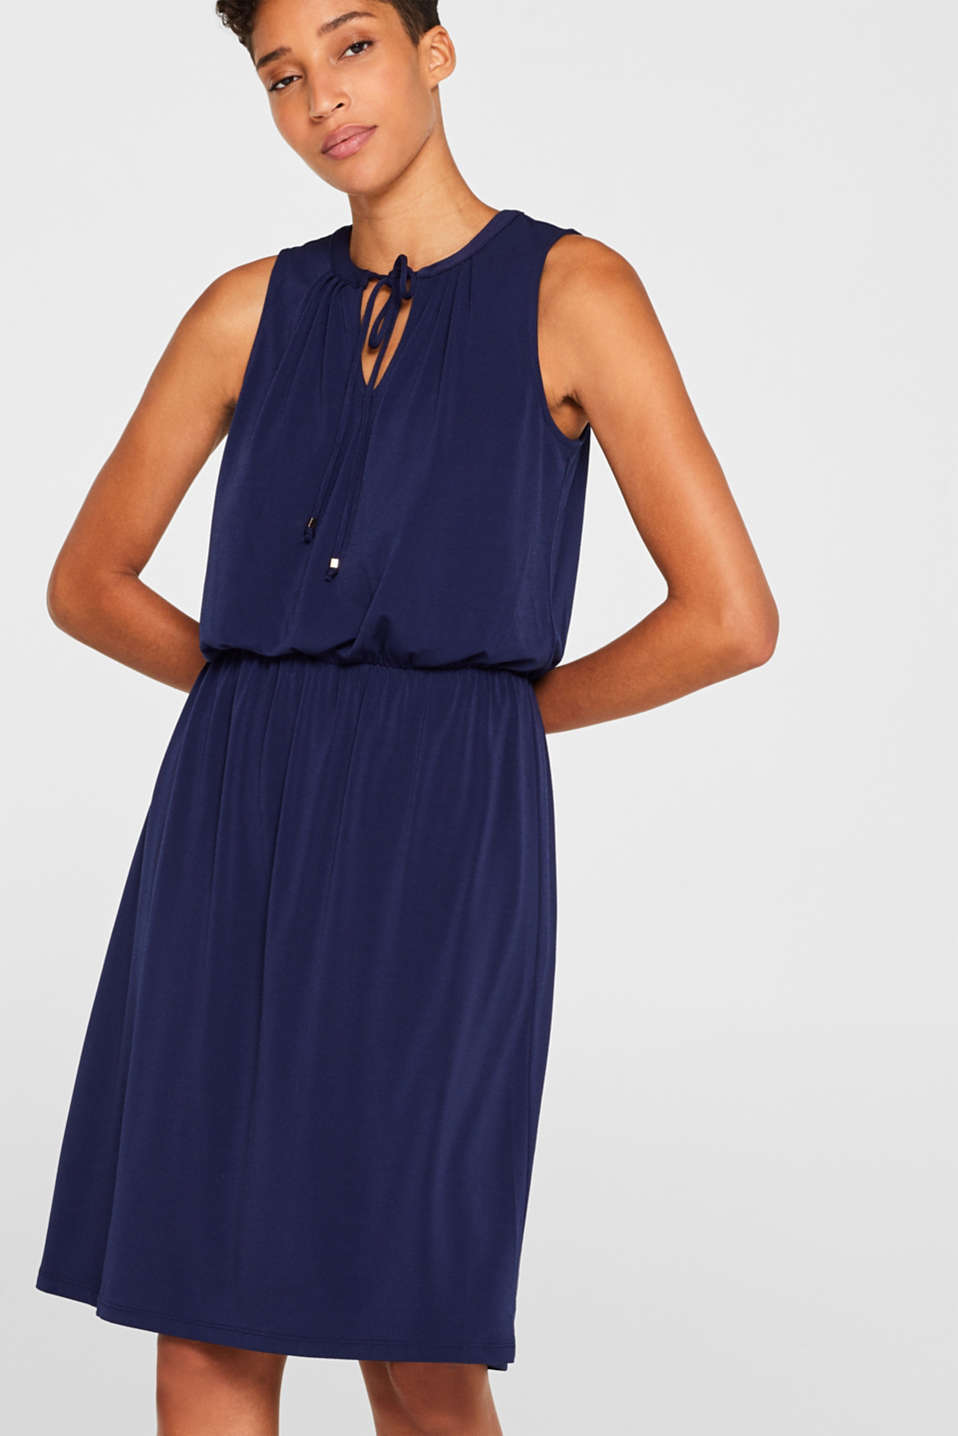 Esprit - Stretch jersey dress with polka dots or a plain colour